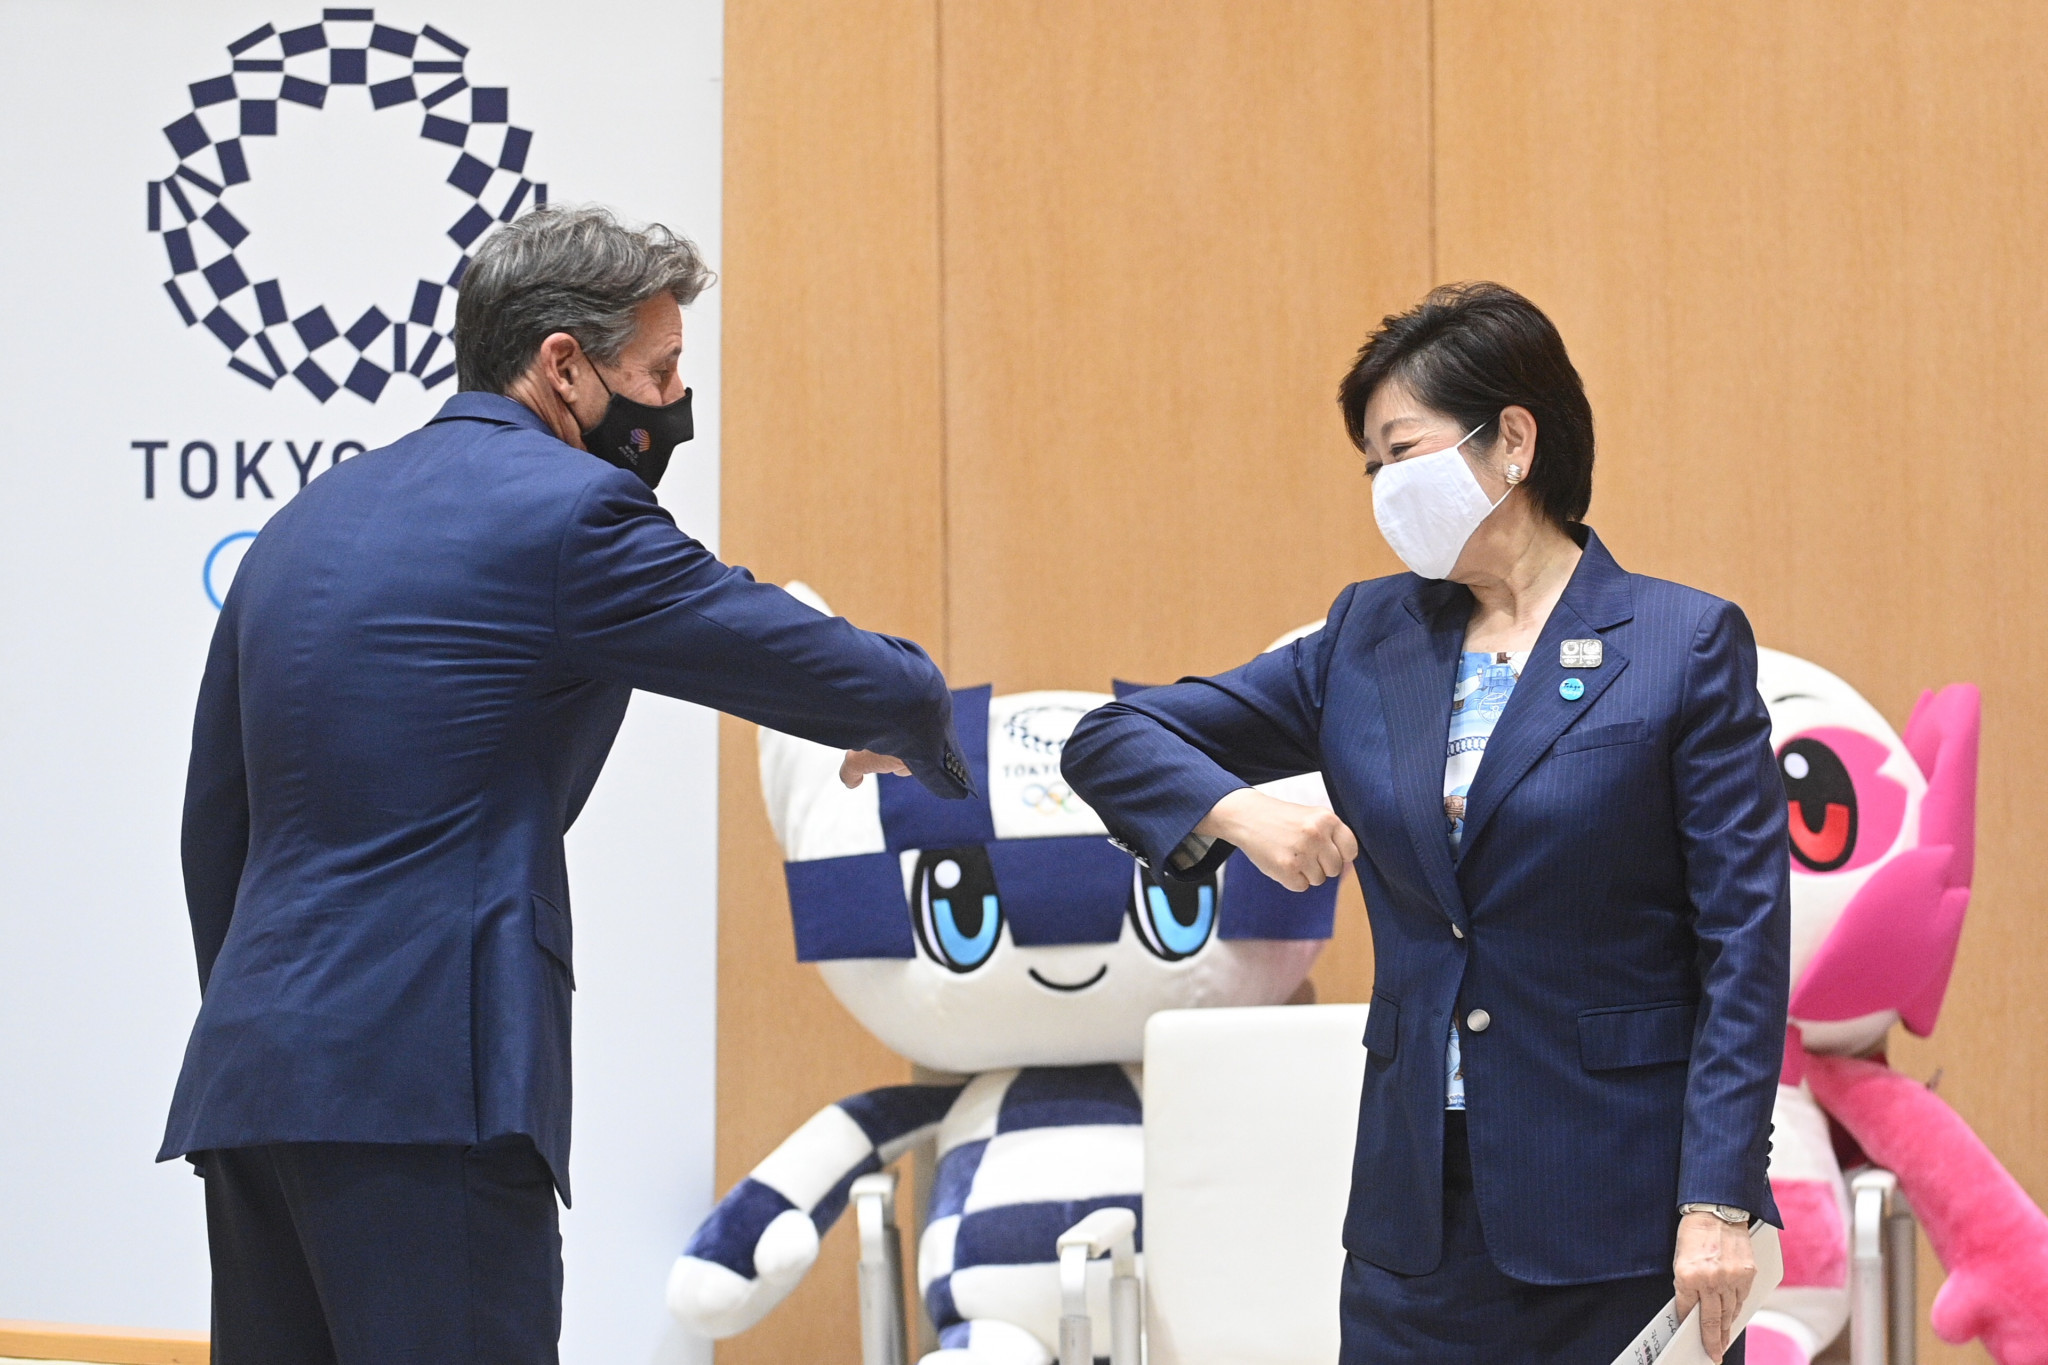 Sebastian Coe met with key Tokyo 2020 officials and Tokyo Governor Yuriko Koike on his visit ©Getty Images